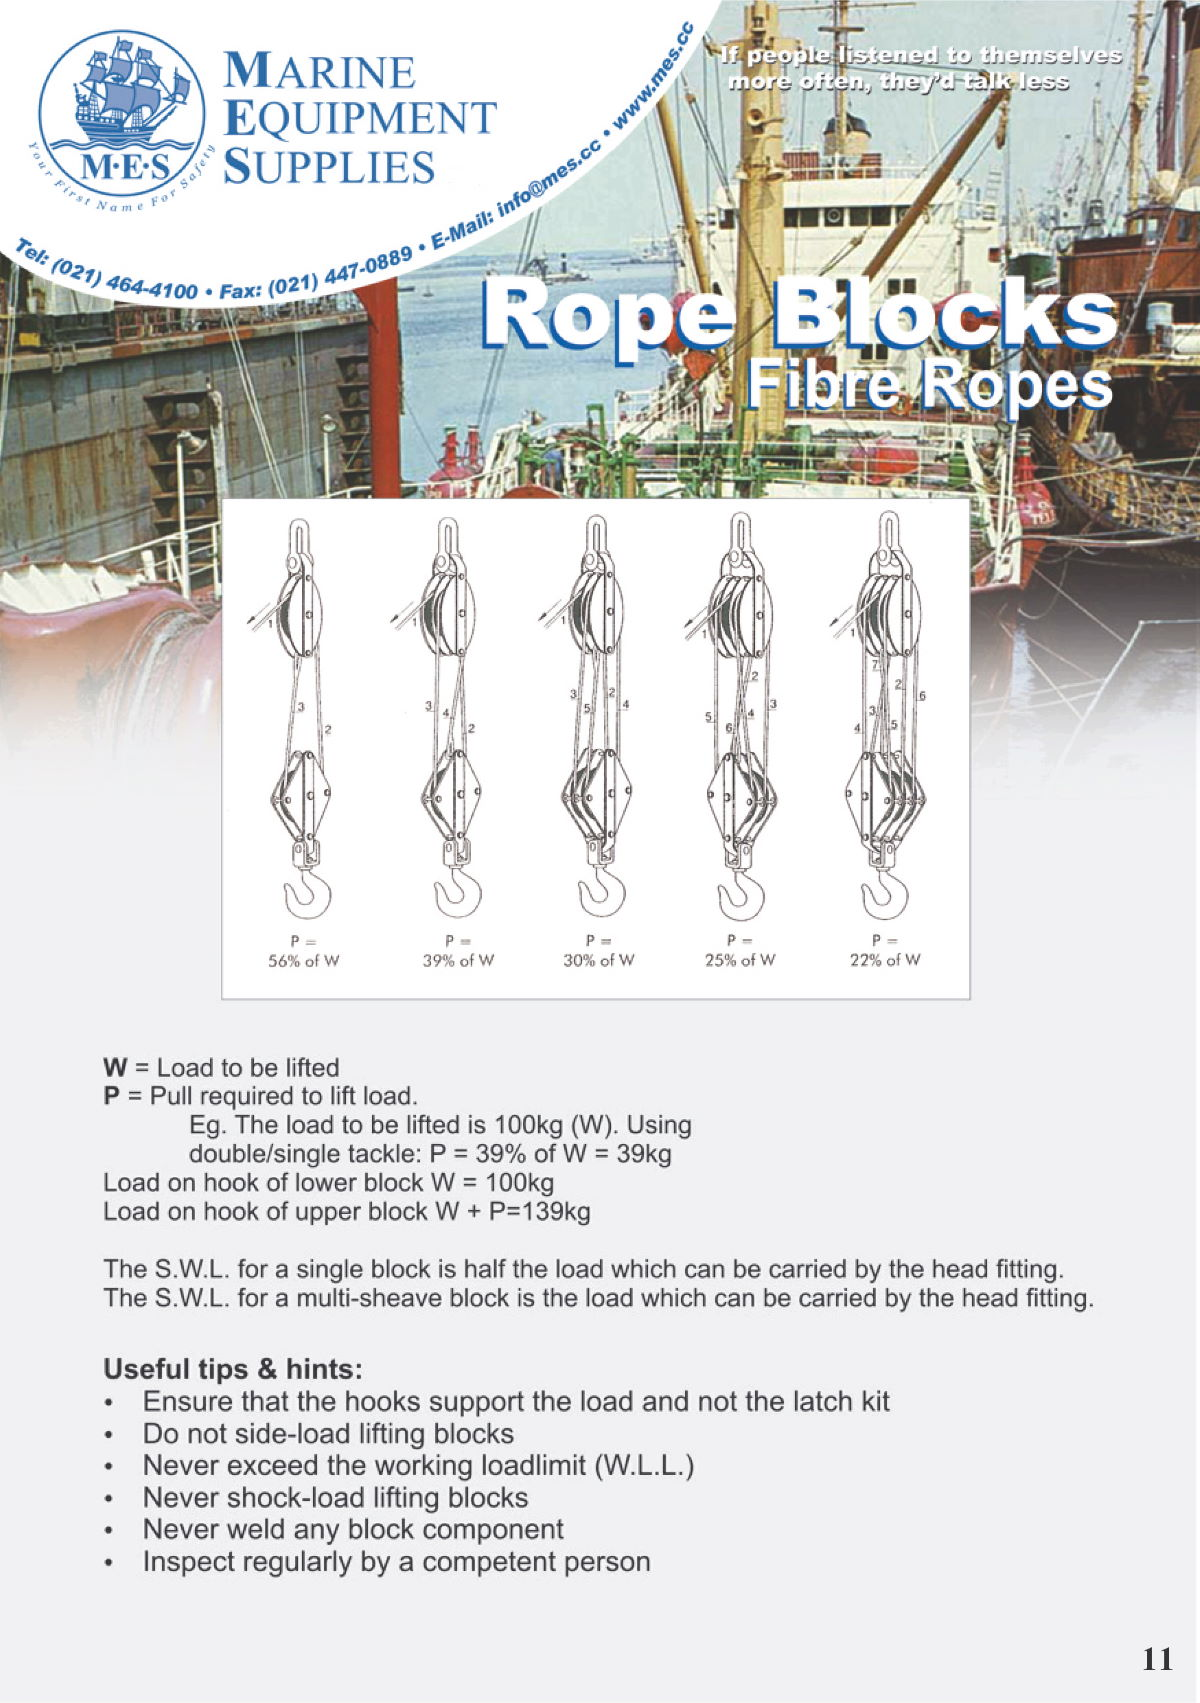 Marine Rope Blocks